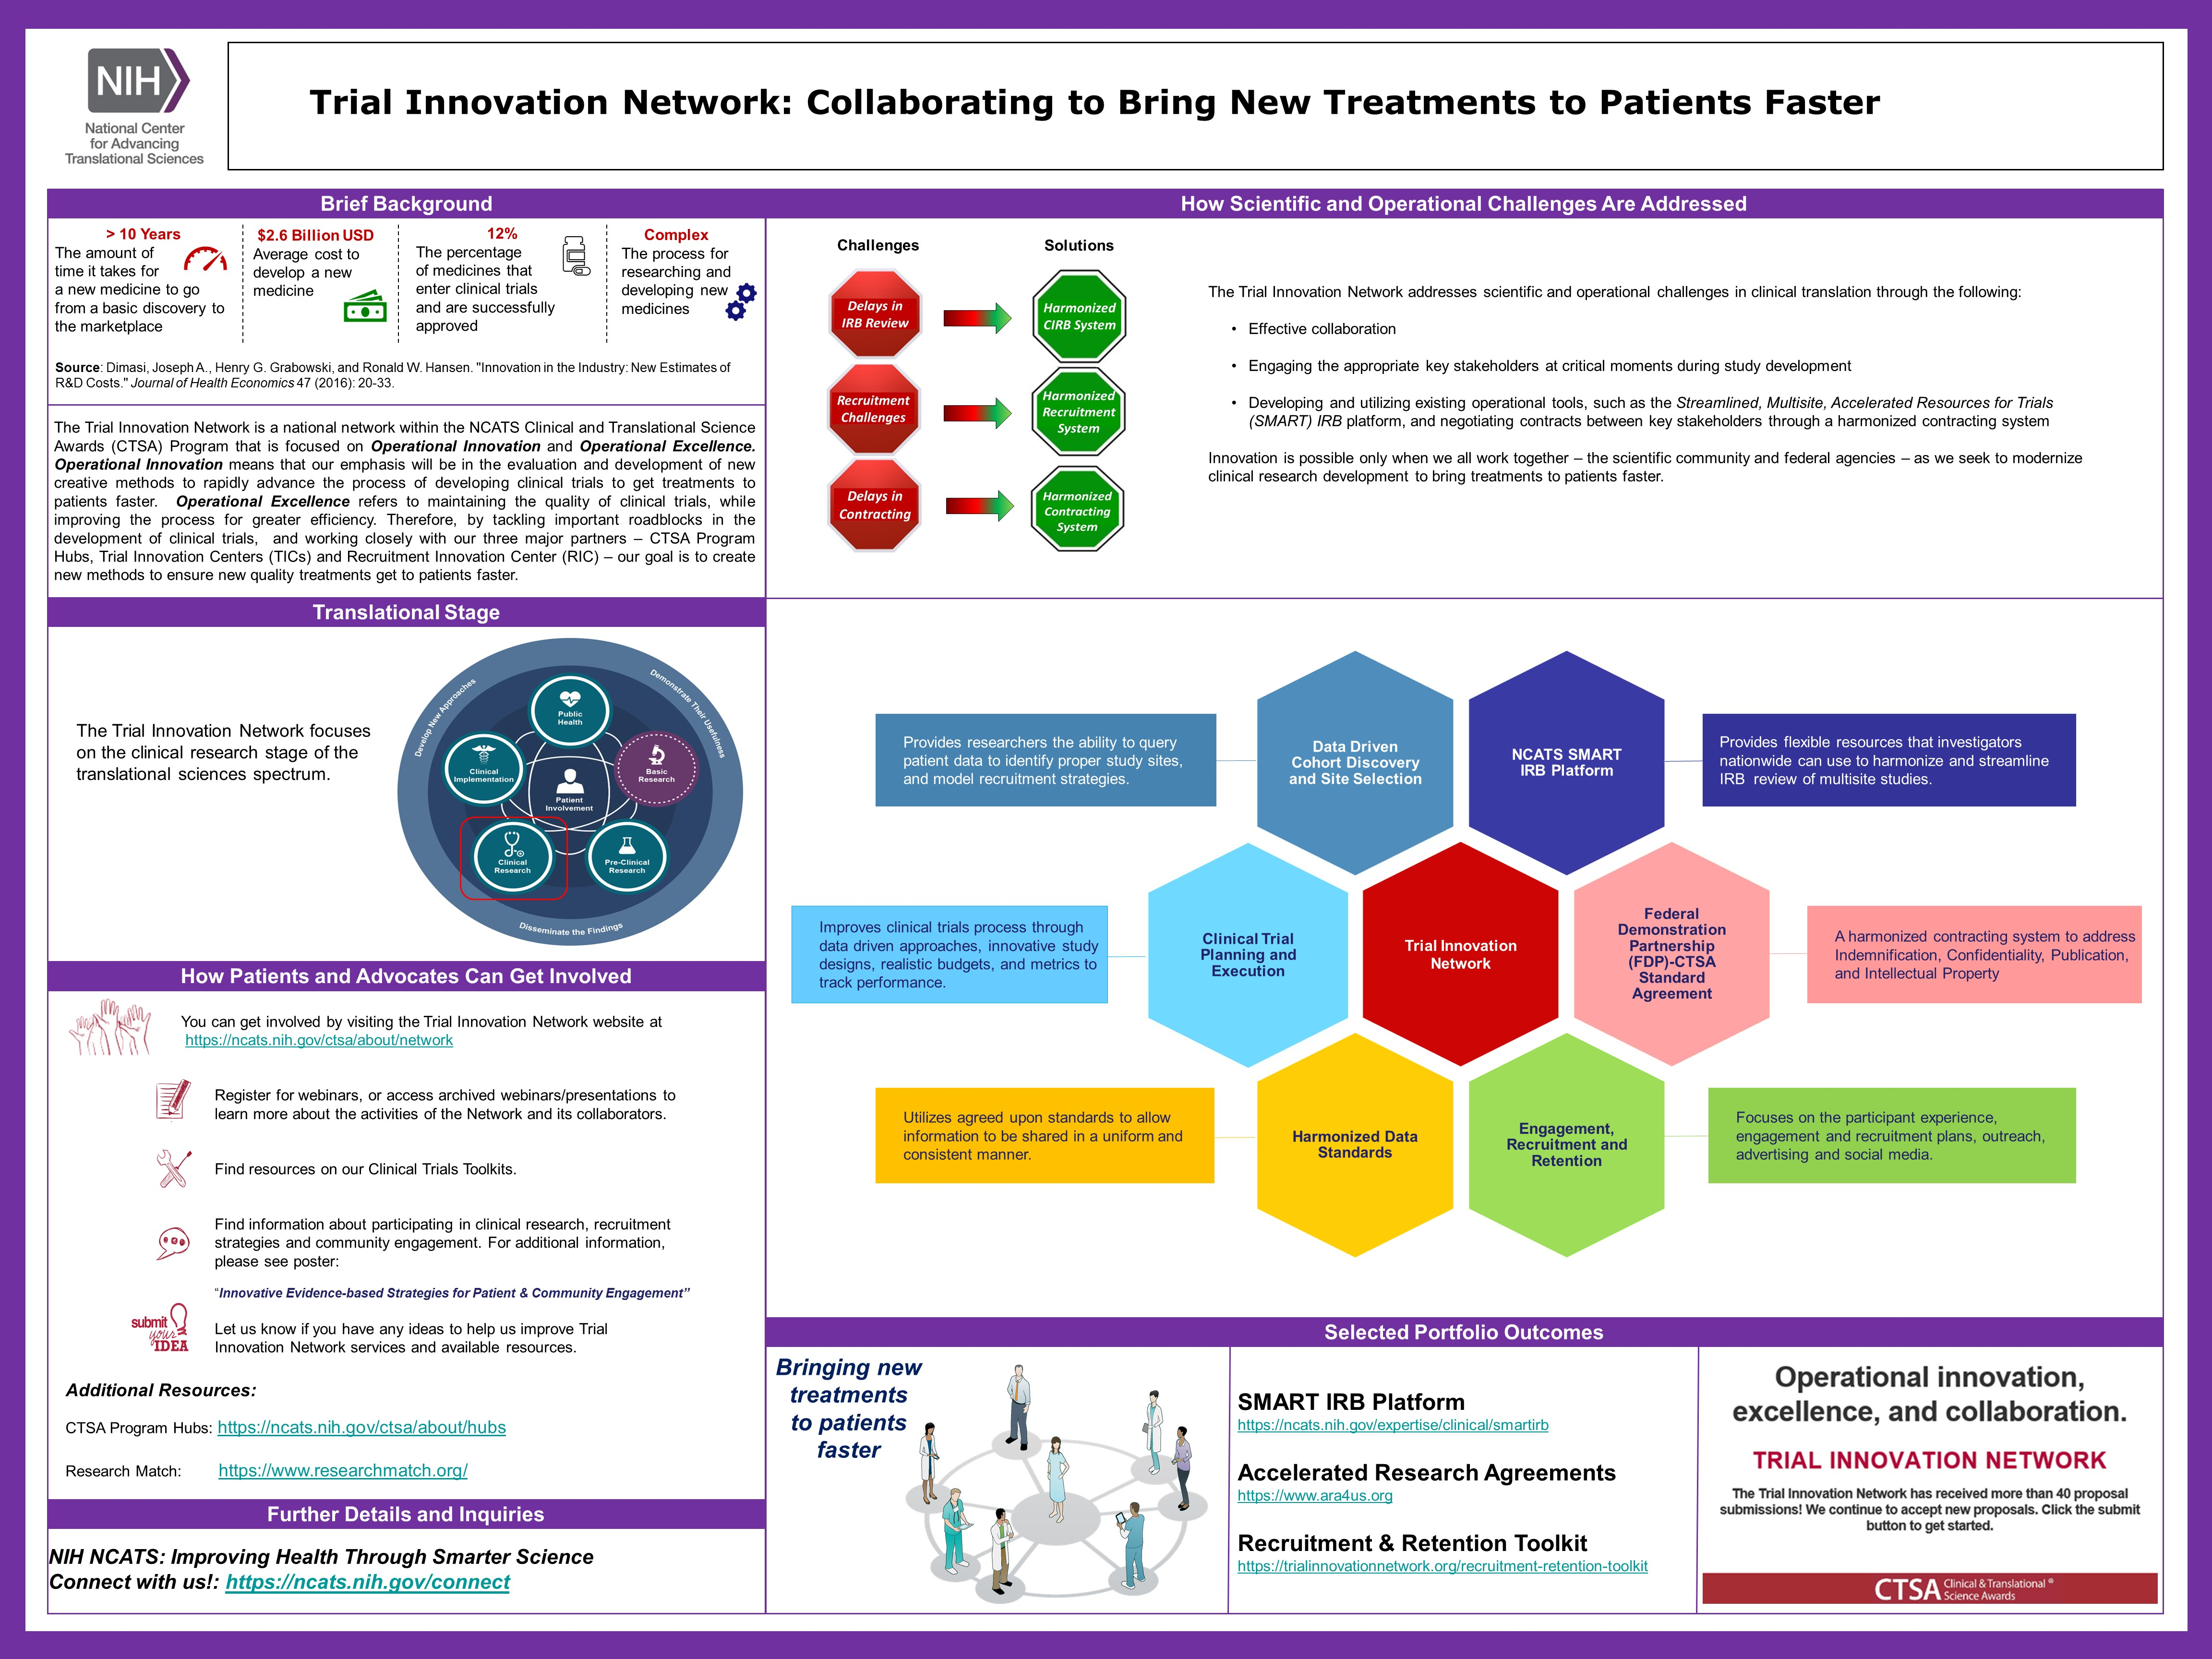 This NCATS Day poster provides background on the Trial Innovation Network: Collaborating to Bring New Treatments to Patients Faster, part of NCATS' Clinical and Translational Science Awards Program, including goals, where it falls within the path of drug and therapeutics development and the translational science spectrum, how patients and advocates can get involved, and how NCATS addresses scientific and operational challenges.